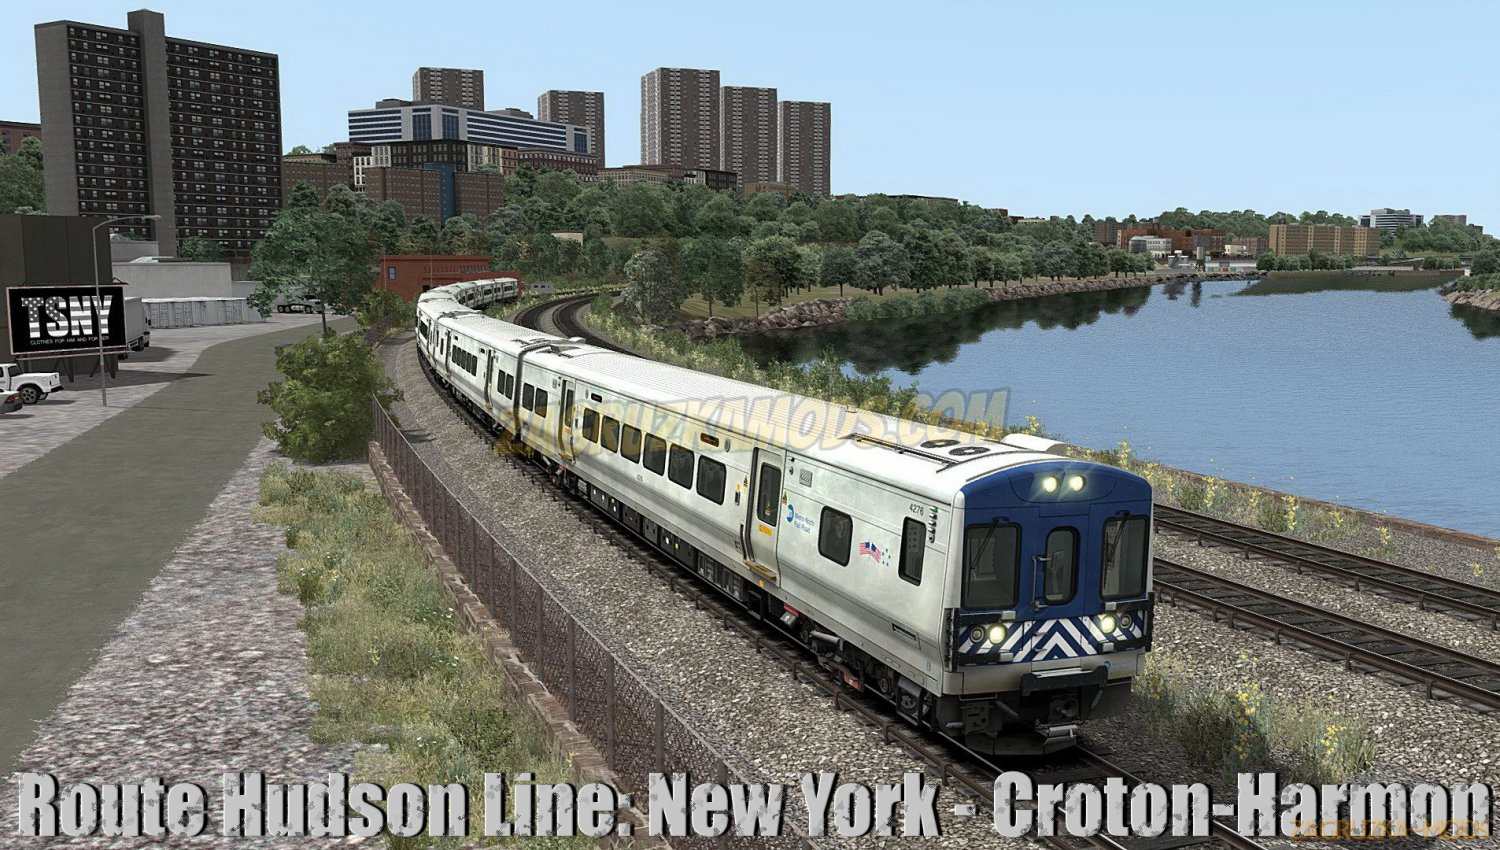 Route Hudson Line: New York - Croton-Harmon v1.0 for TS 2019